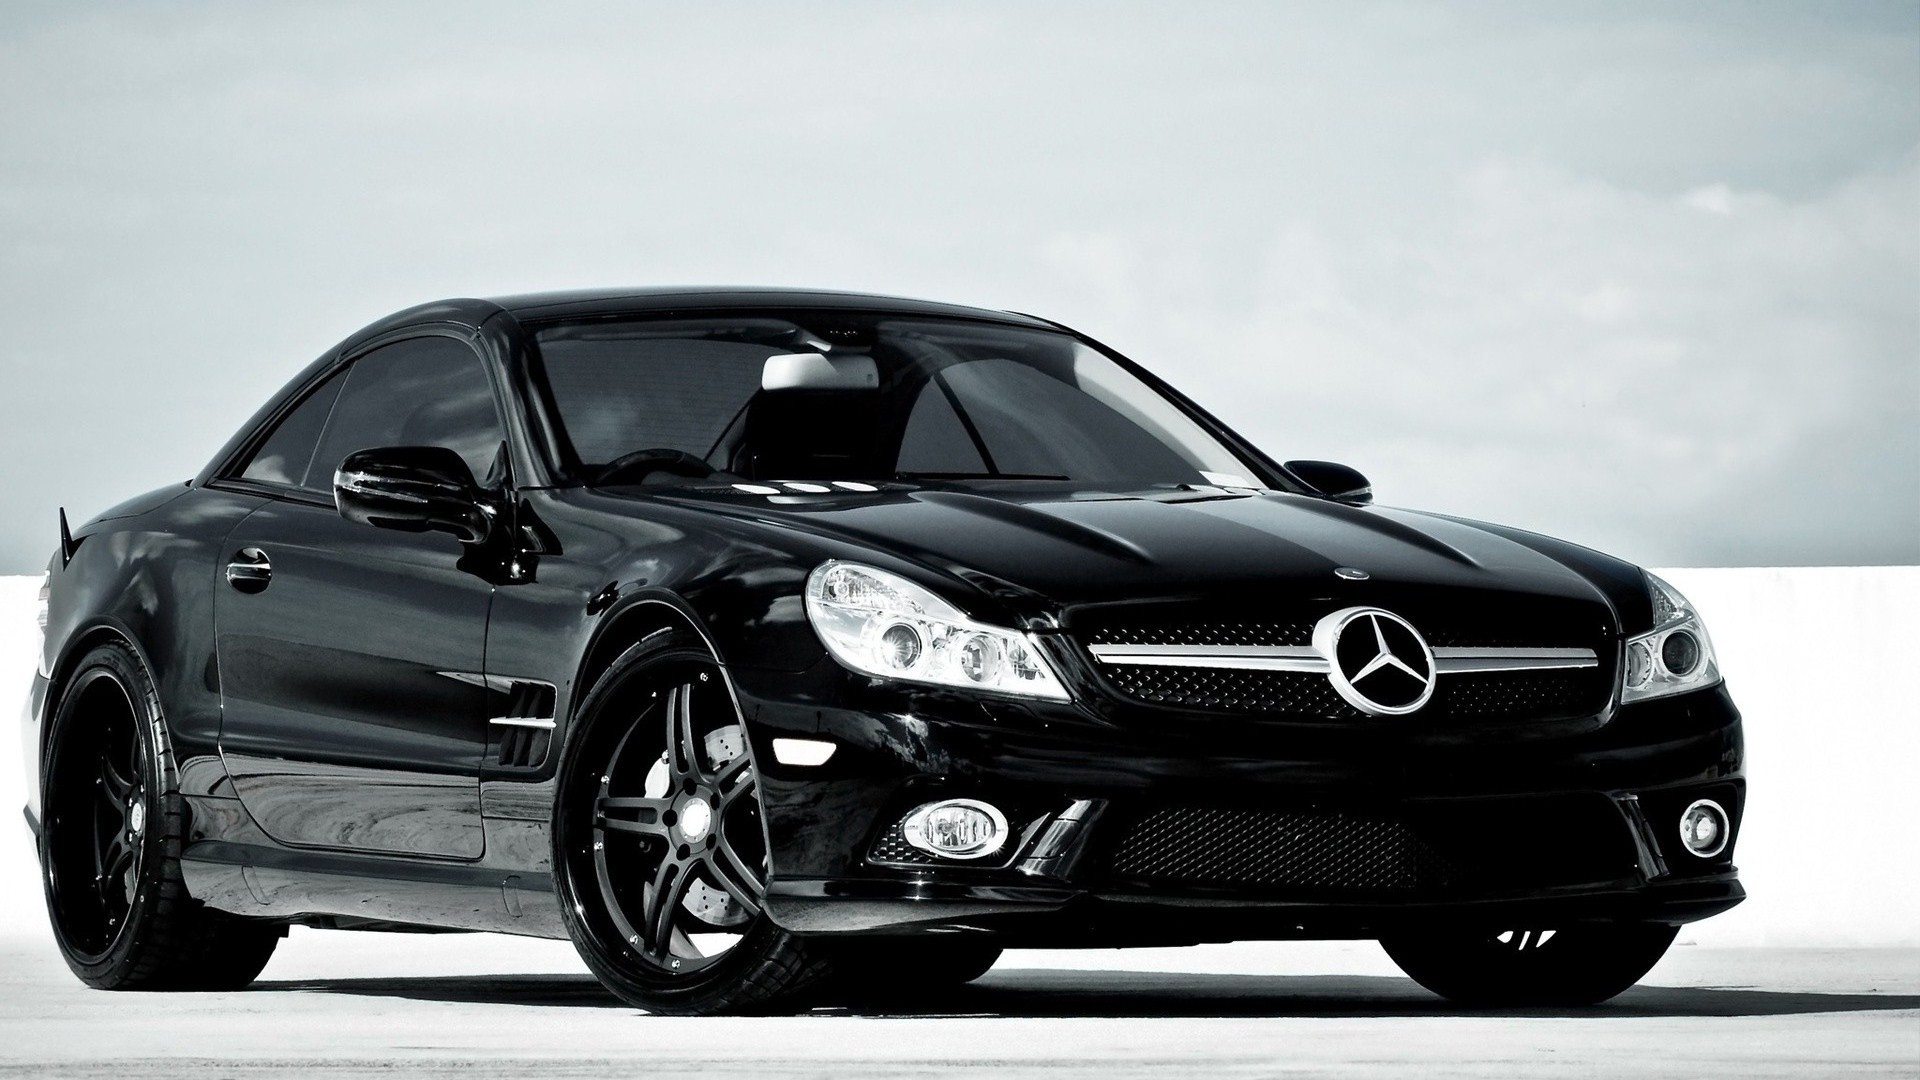 Mercedes Benz Wallpaper 1920x1080 Mercedes Benz Black Cars 1920x1080